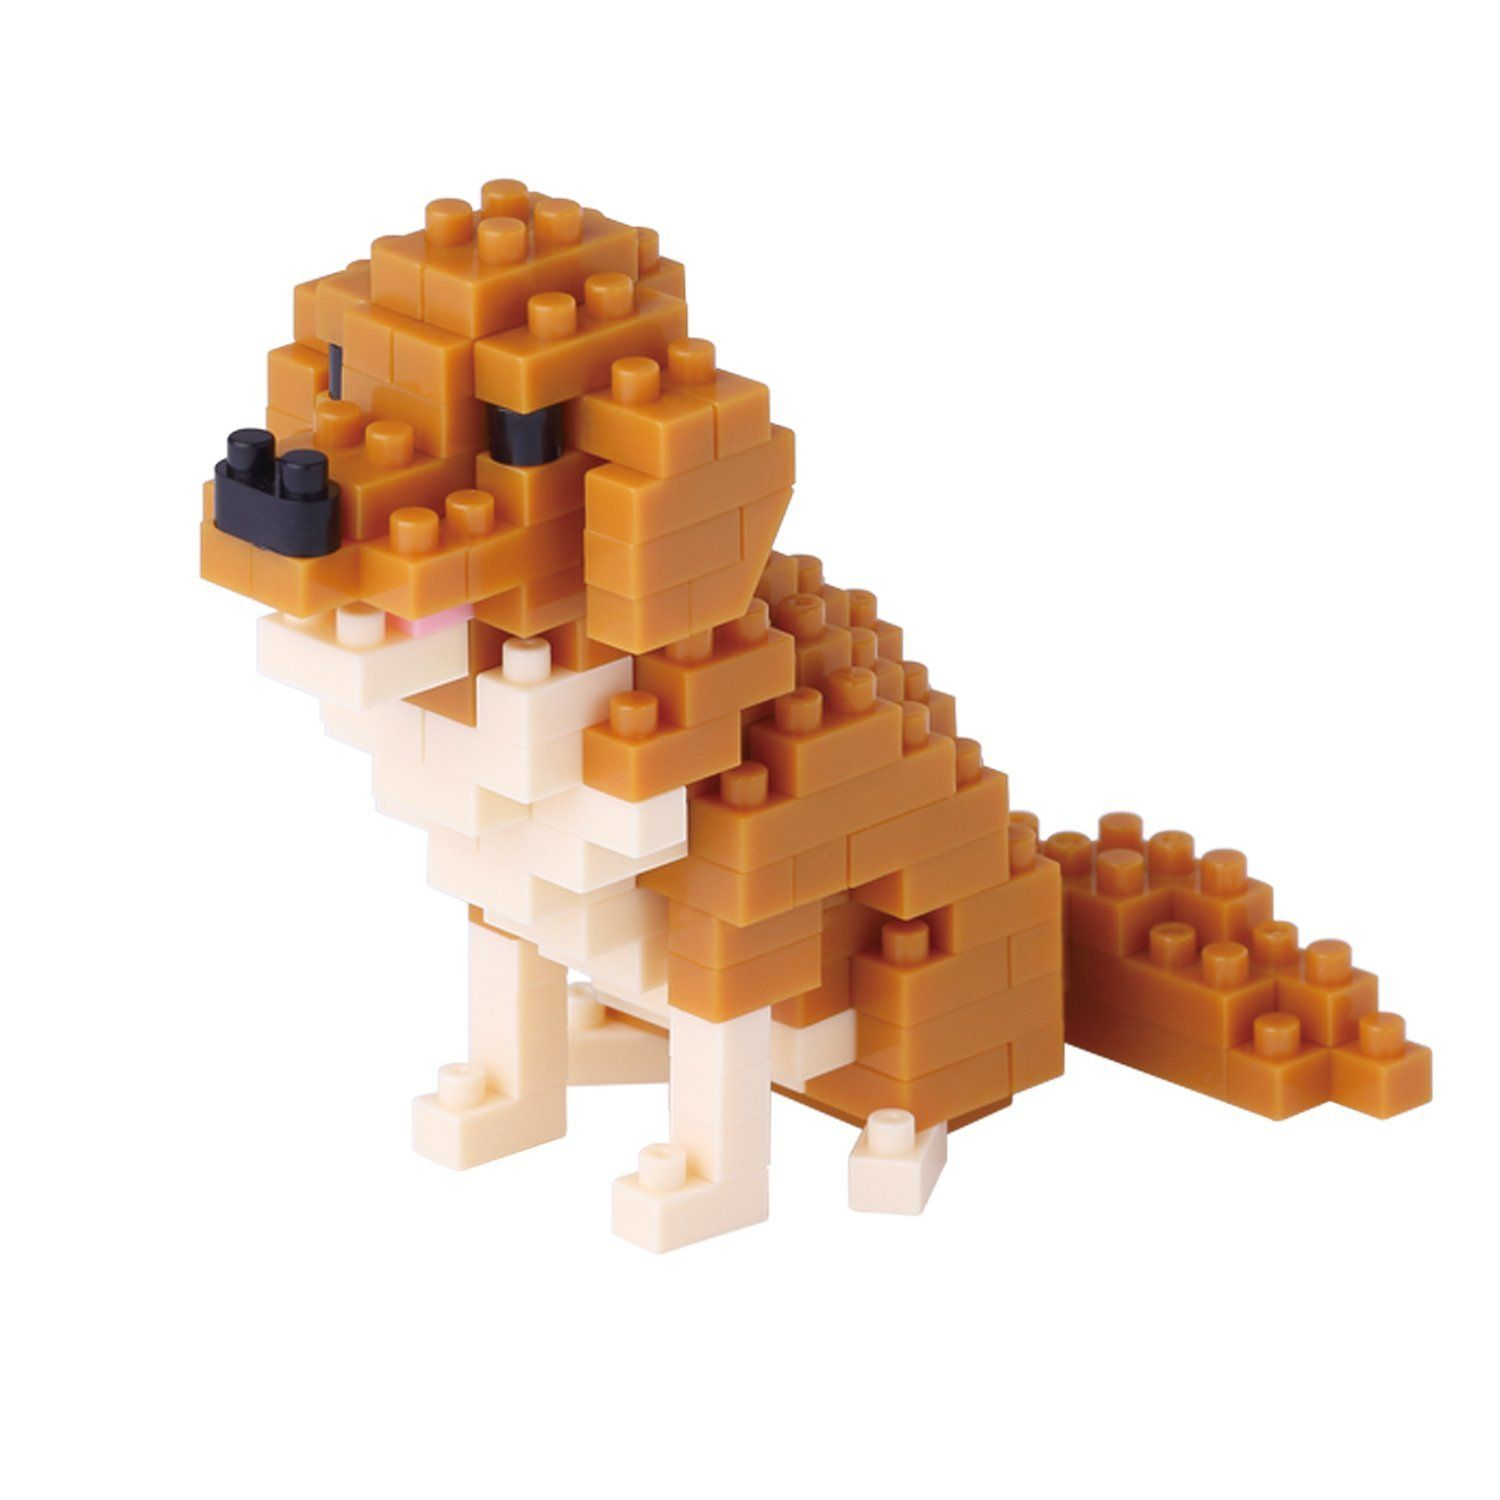 Golden Retriever Mini Building Set by Nanoblock (NBC168) by nanoblock